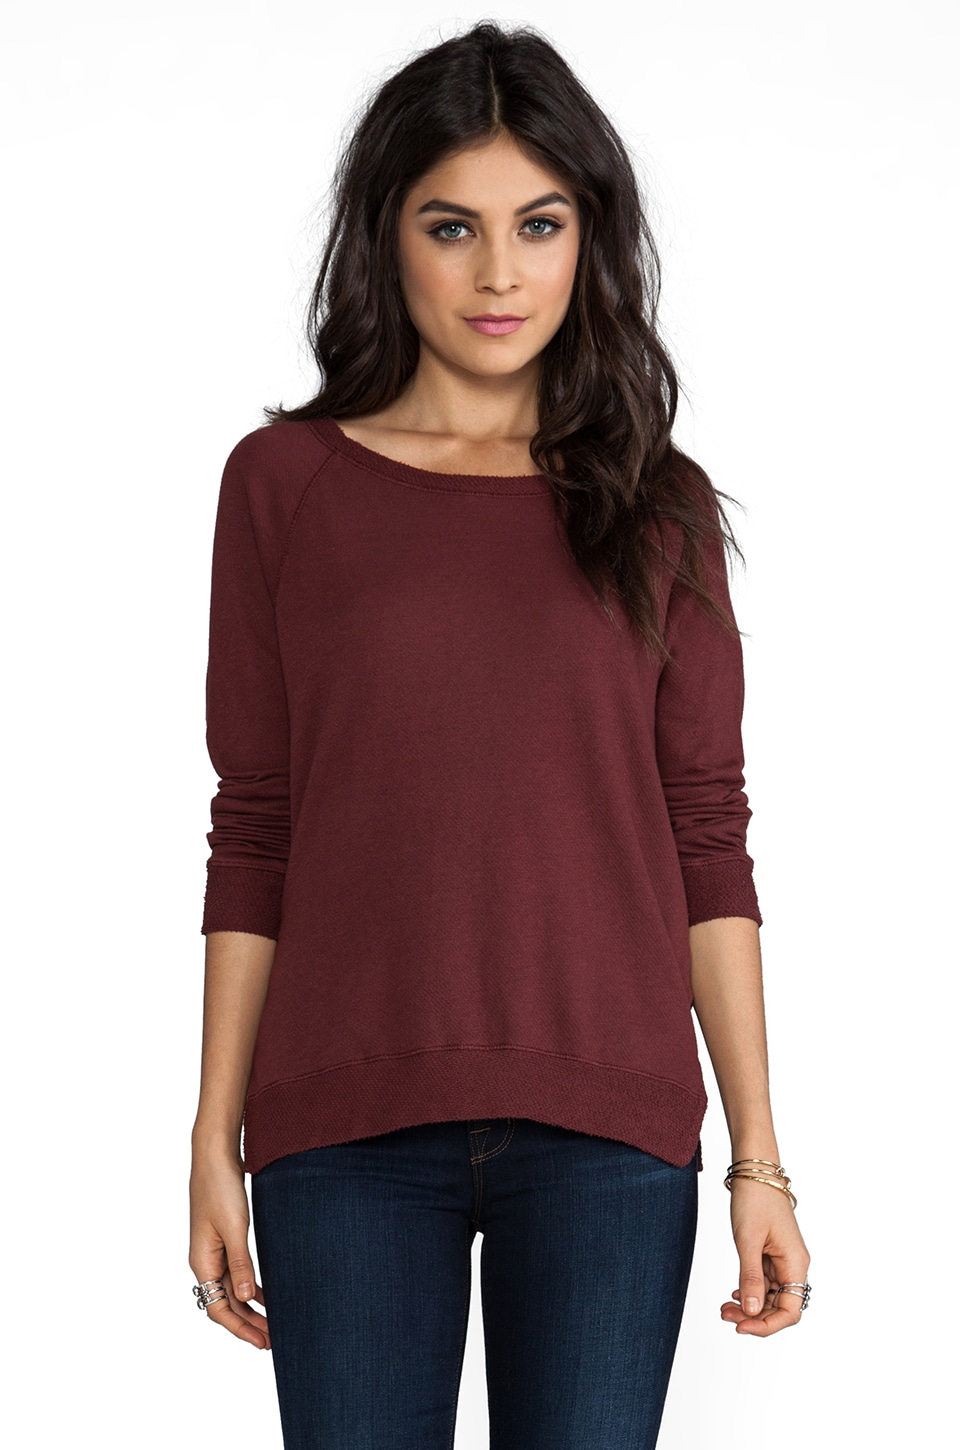 My Line Penny Dolman Sweater in Oxblood